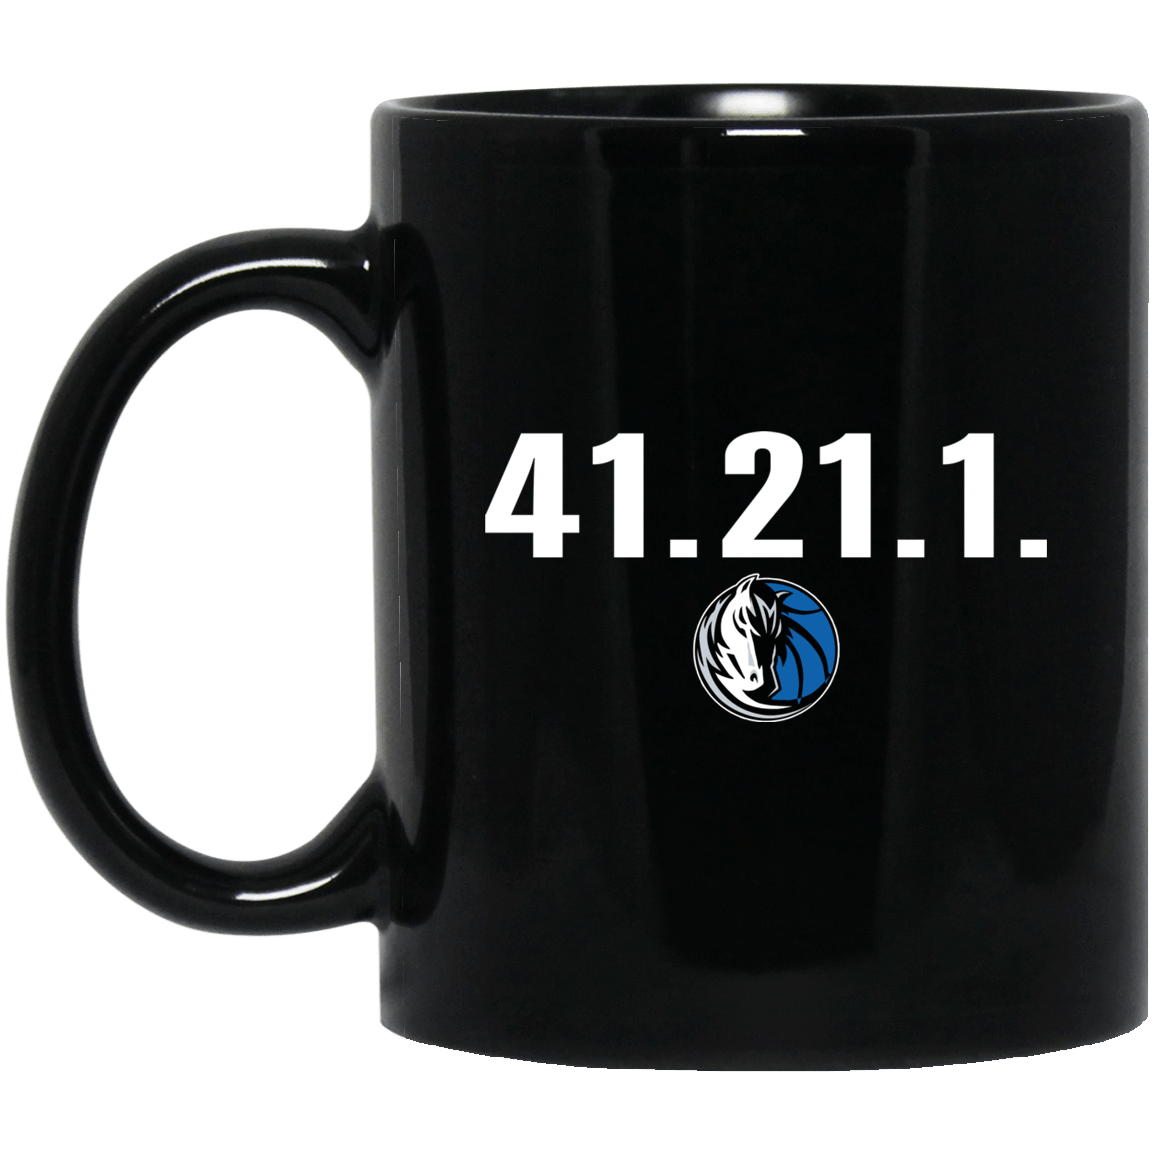 41.21.1 Dallas Mavericks Mug 1065-10181-73180888-49307 - Tee Ript